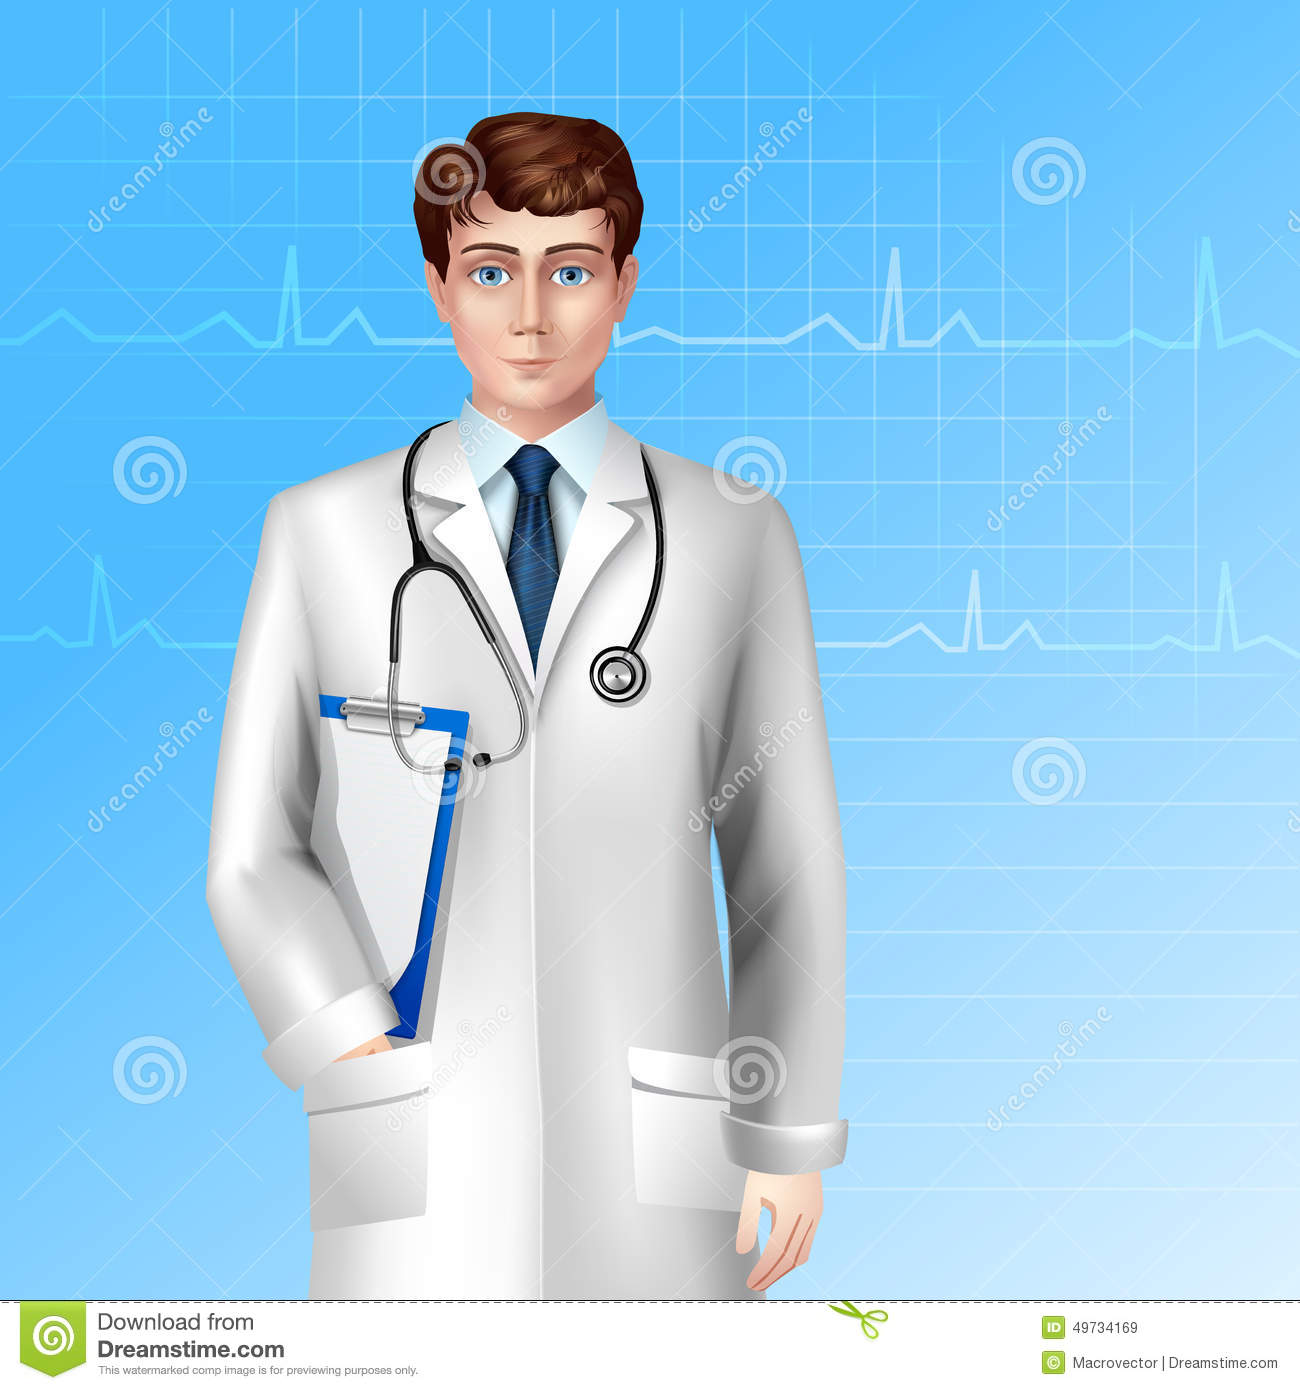 Male Doctor Poster